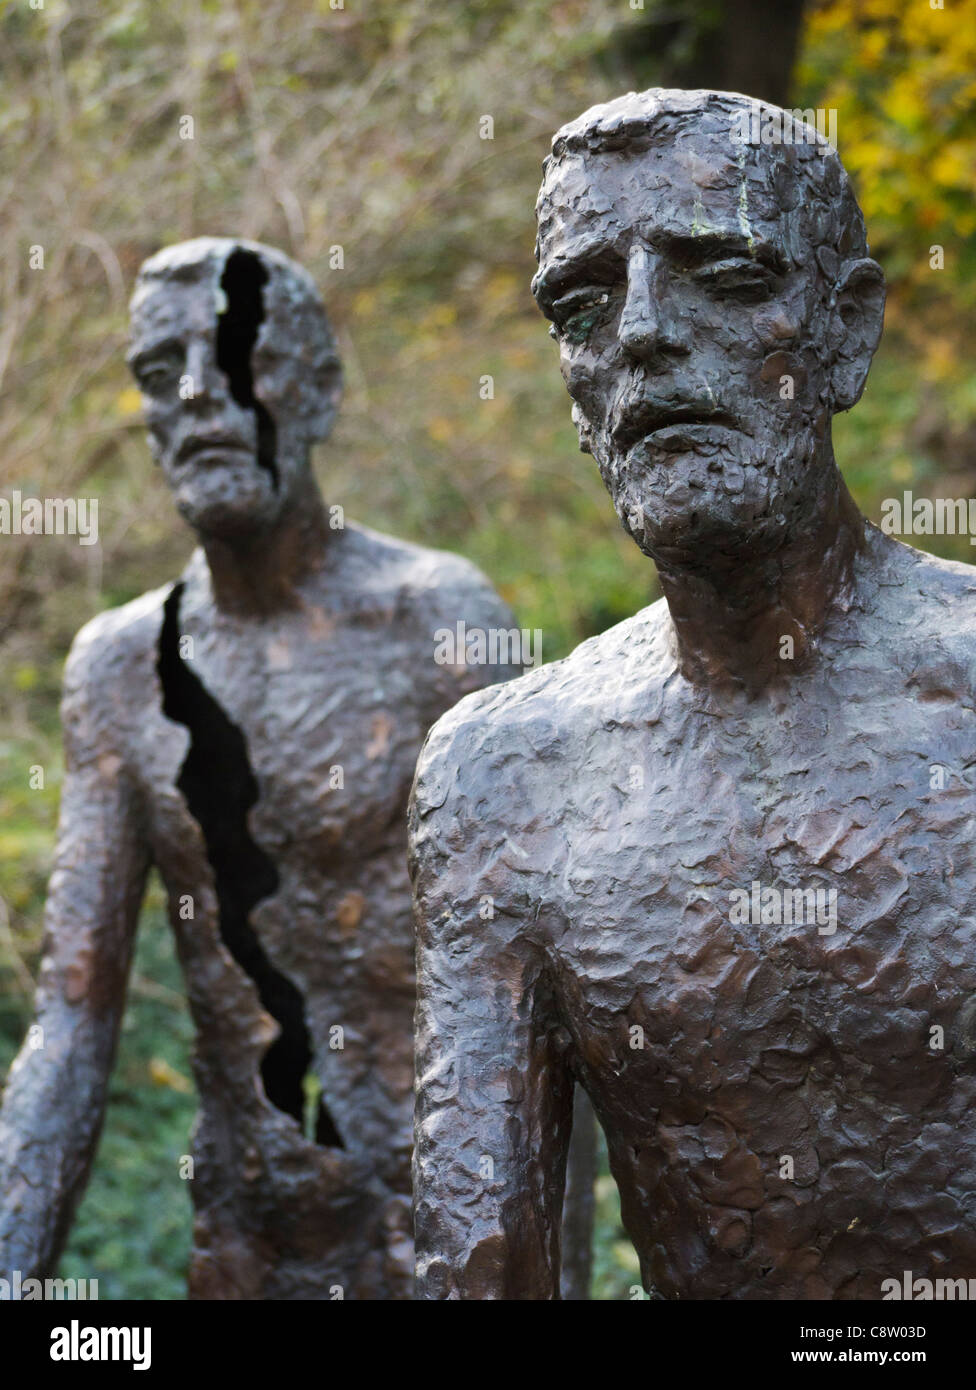 Sculptures at Memorial to the Victims of Communism in Mala Strana in Prague in Czech Republic - Stock Image